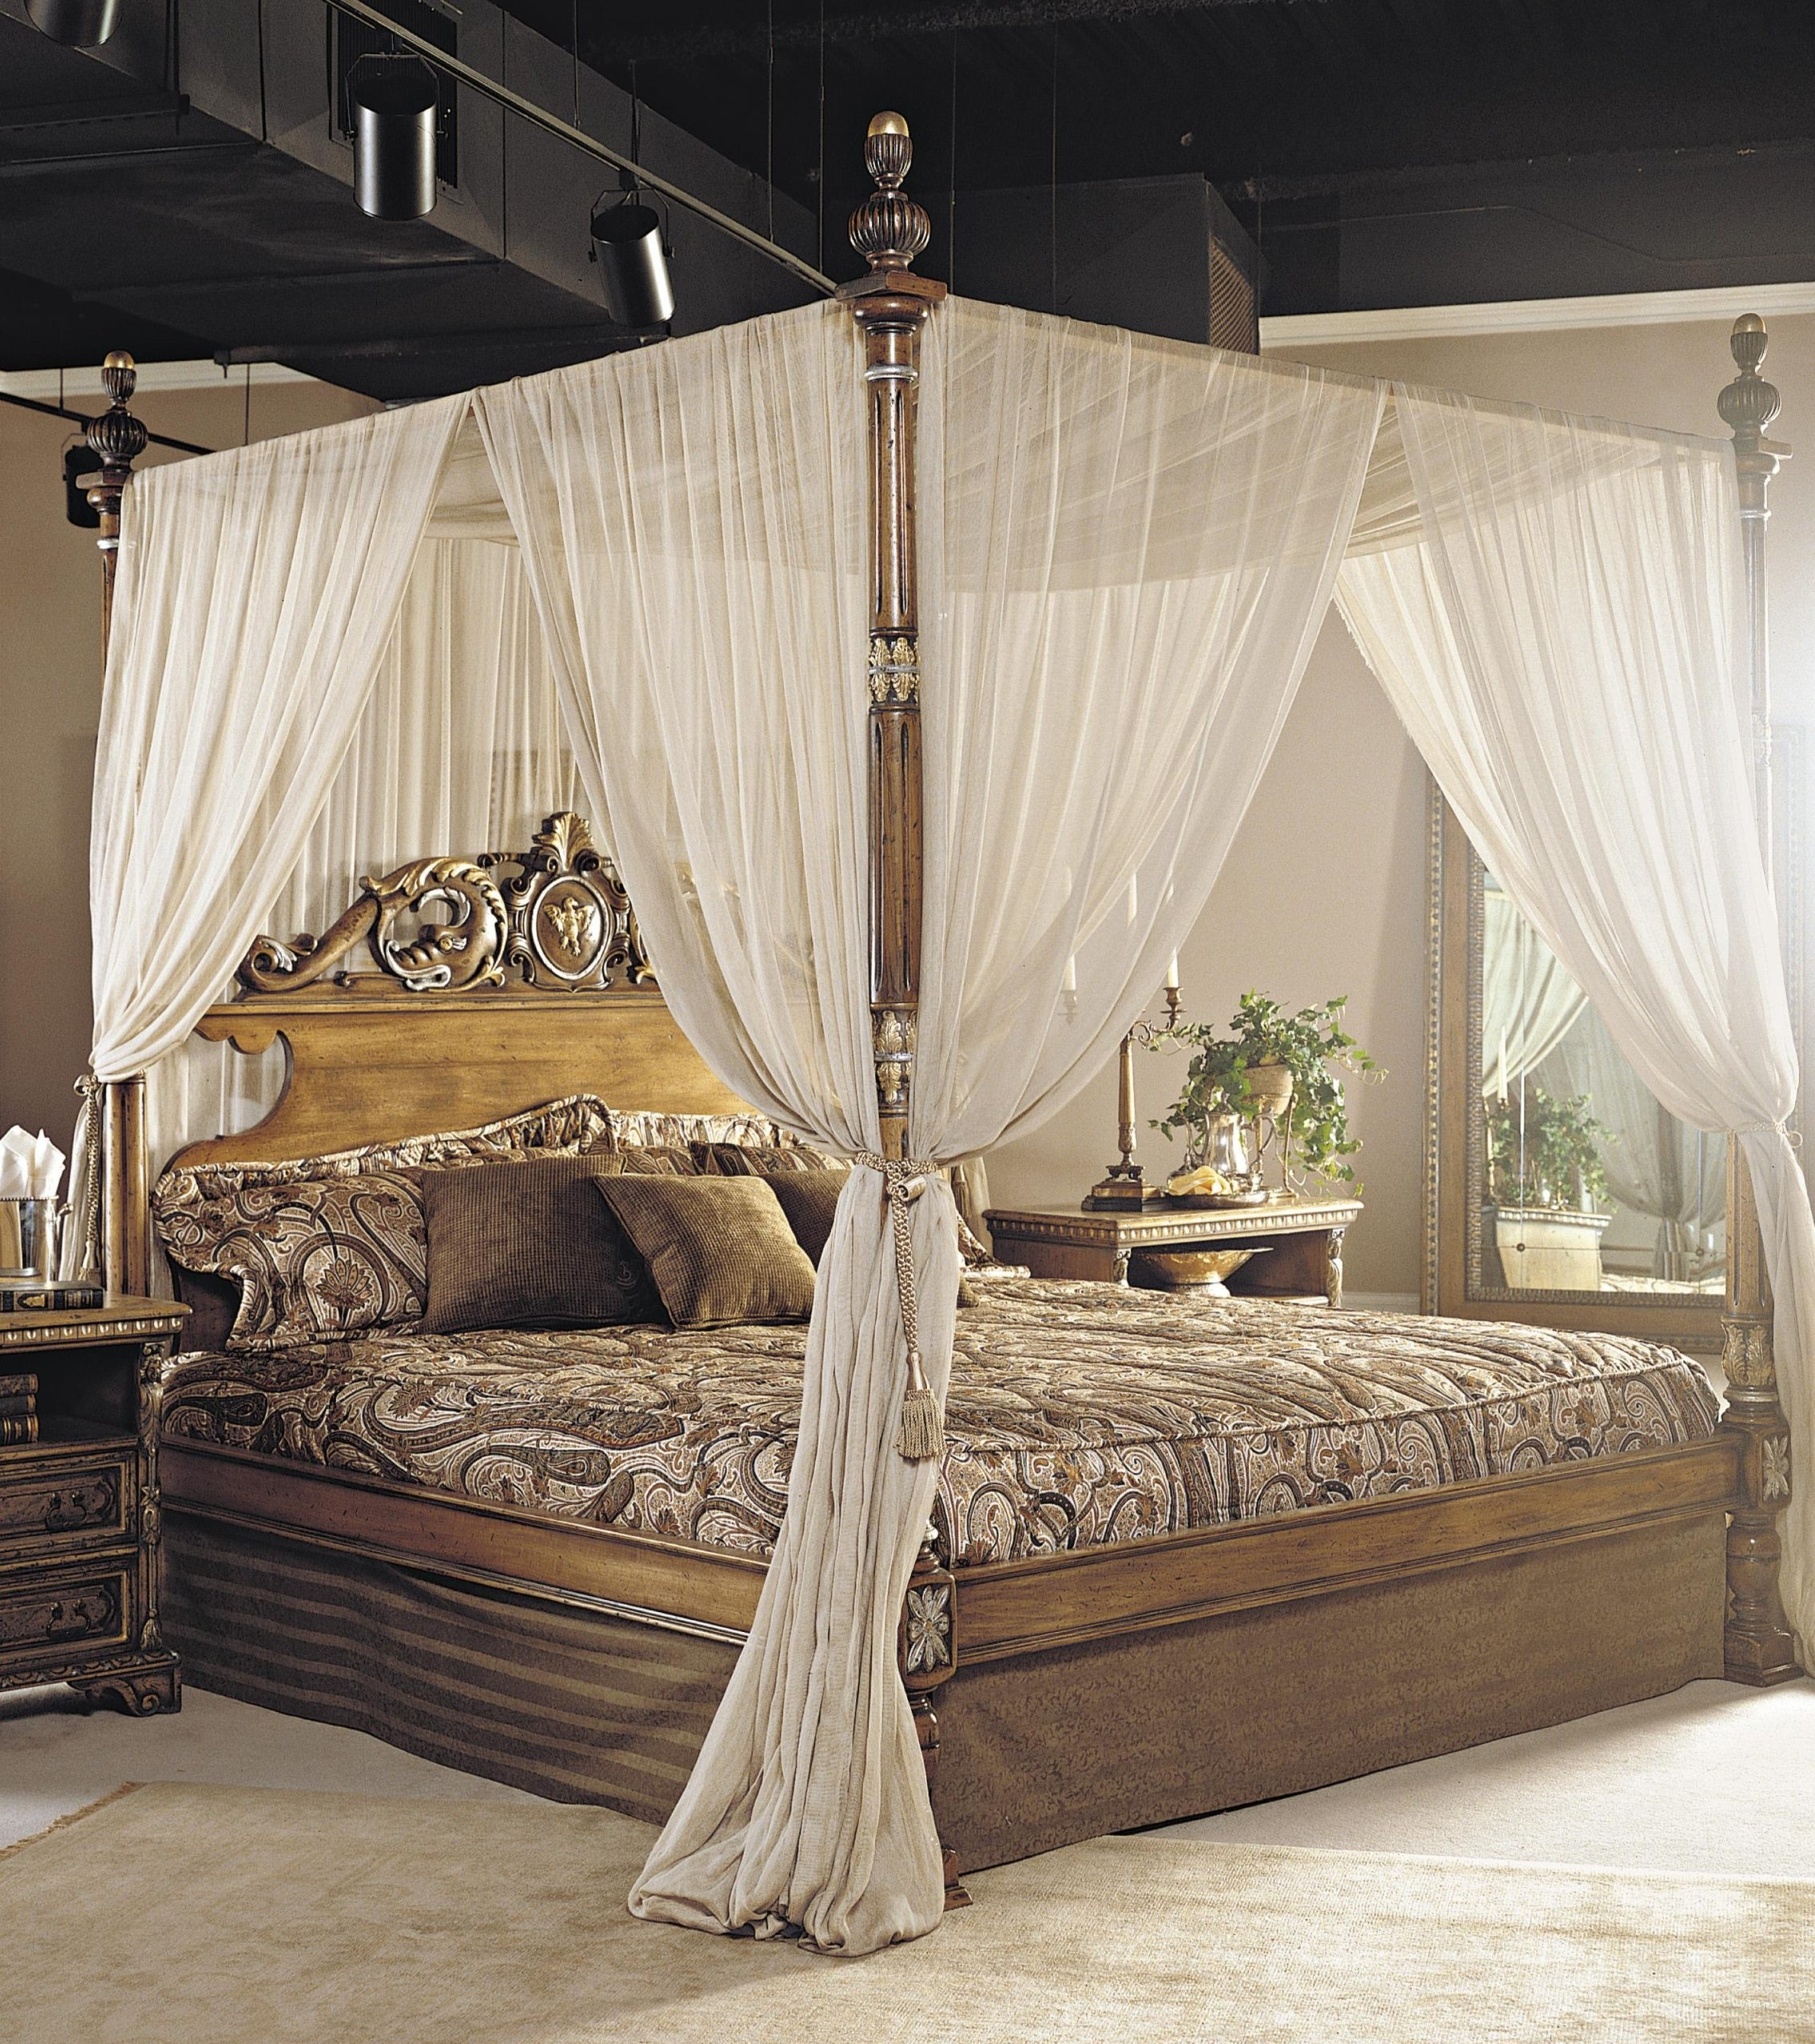 King four poster bed 10 & King Four Poster Bed - Foter